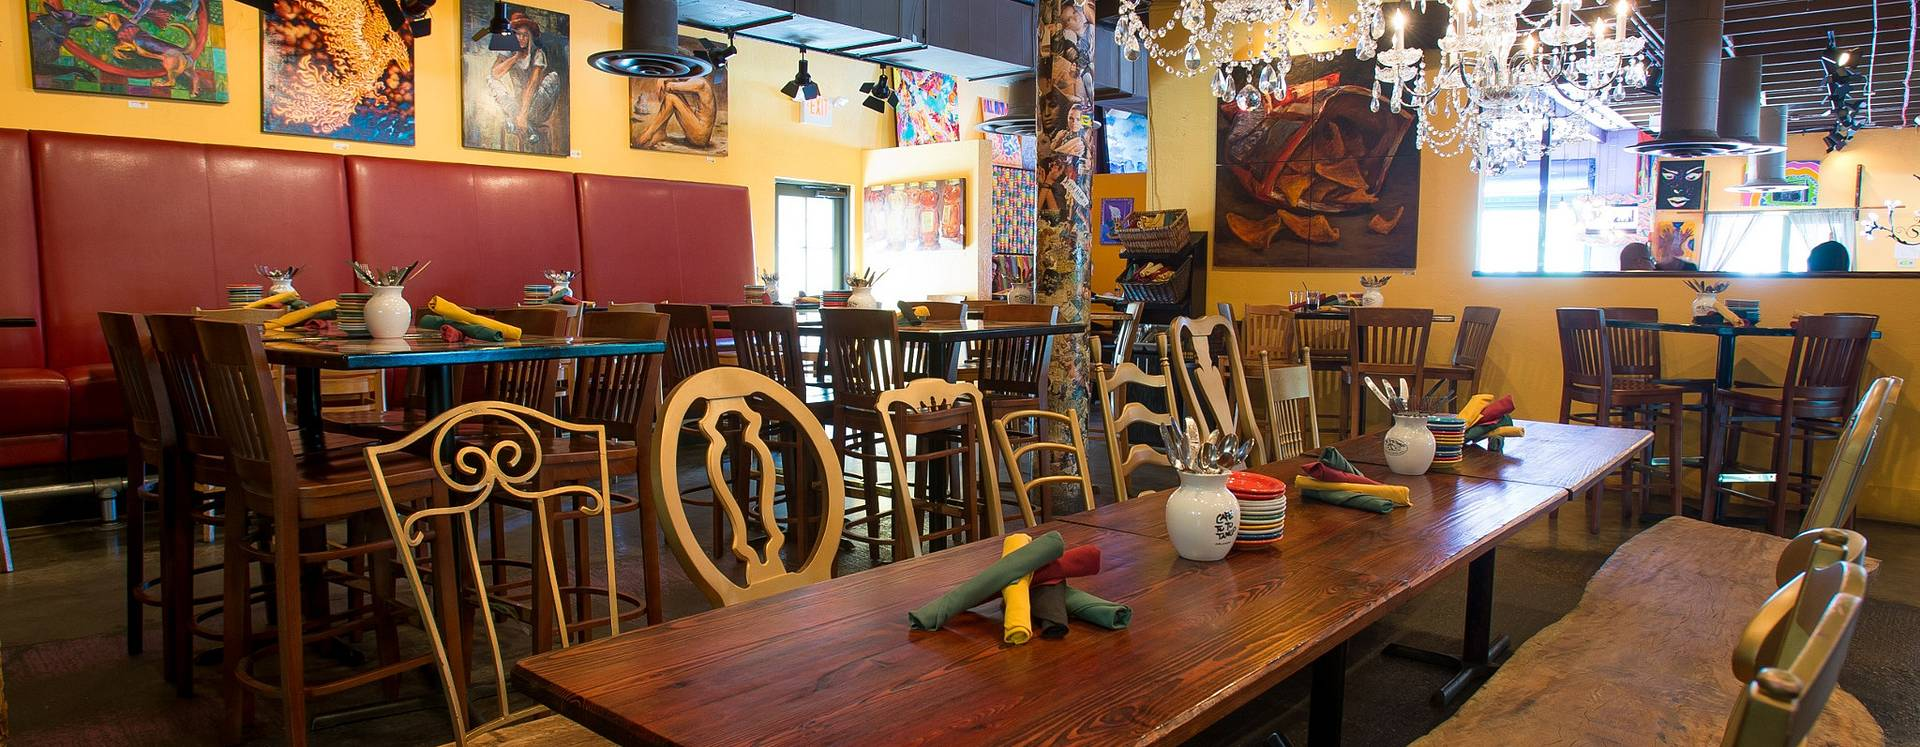 Interior seating area of Cafe Tu Tu Tango